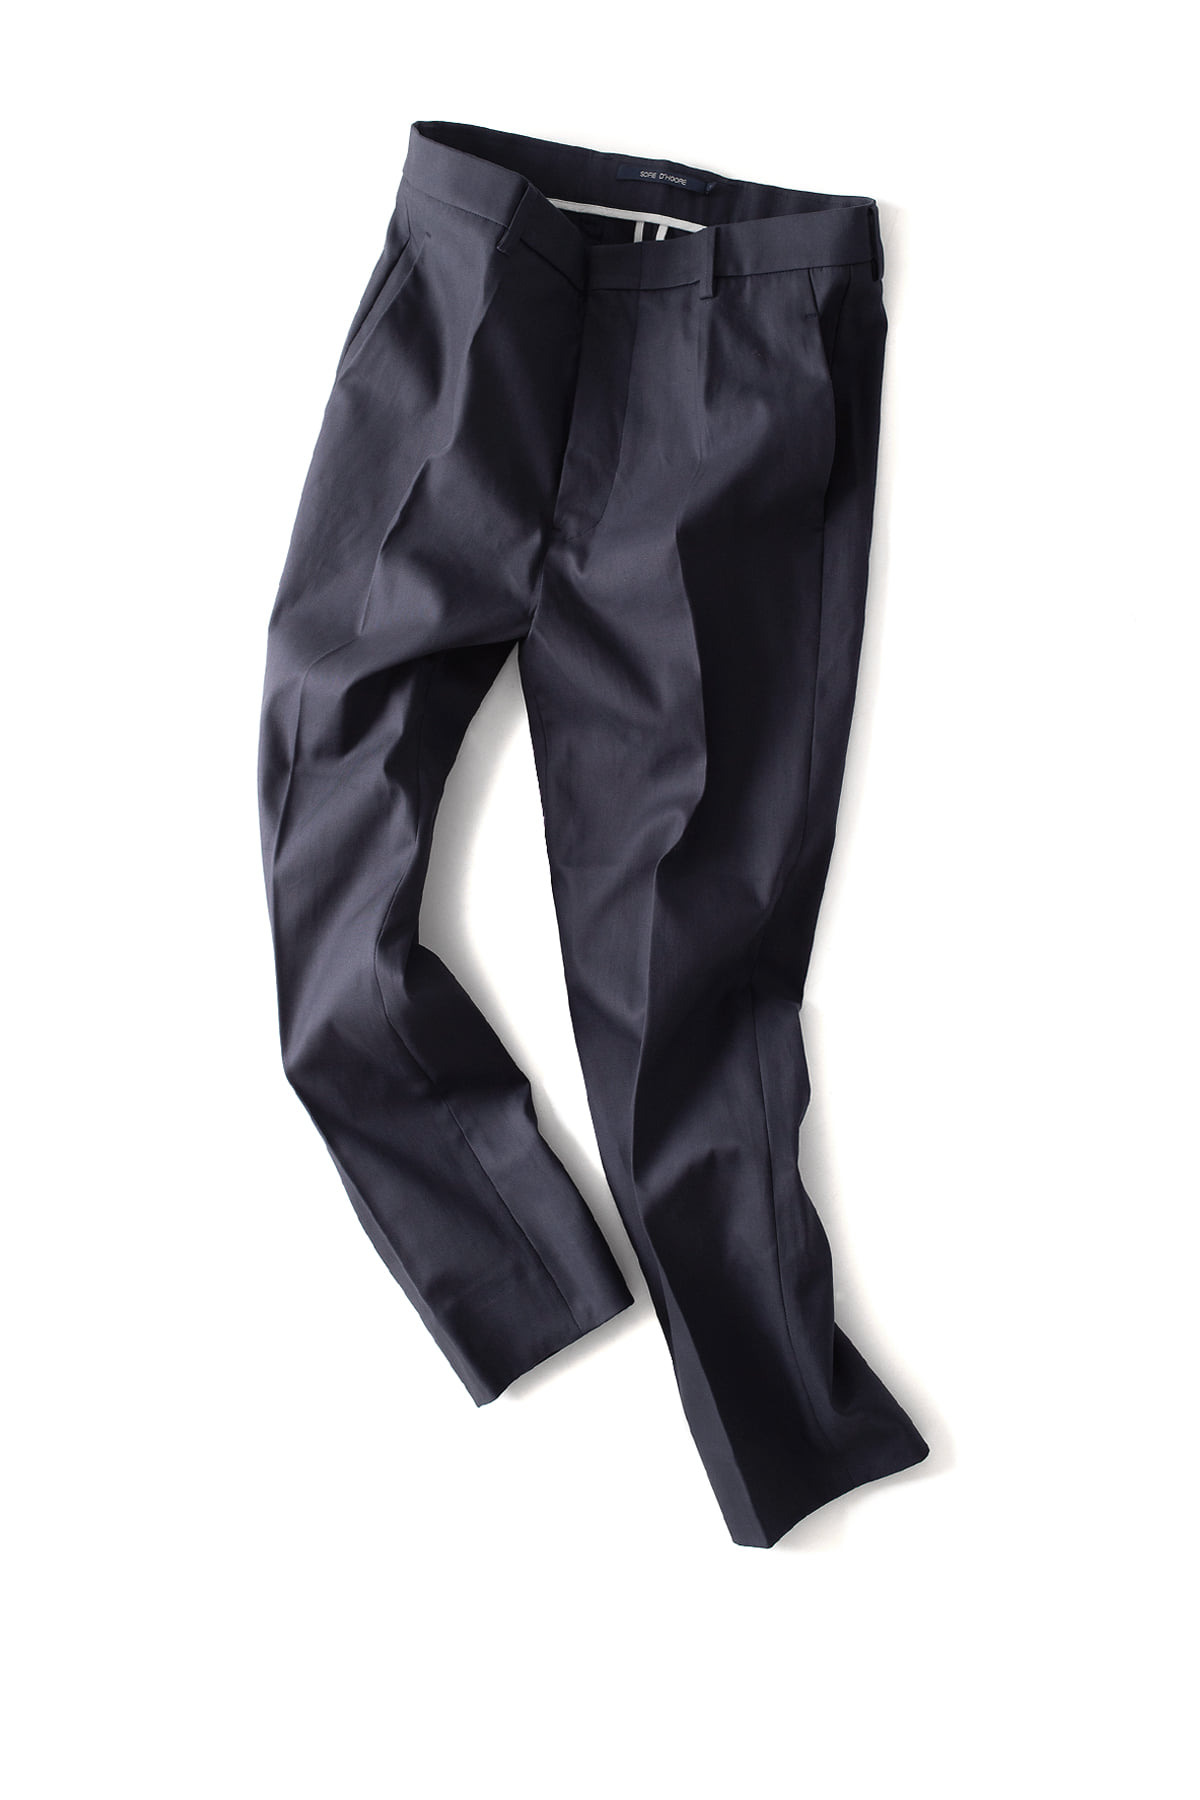 Sofie D'Hoore : Classic Fitted Pants (Navy)